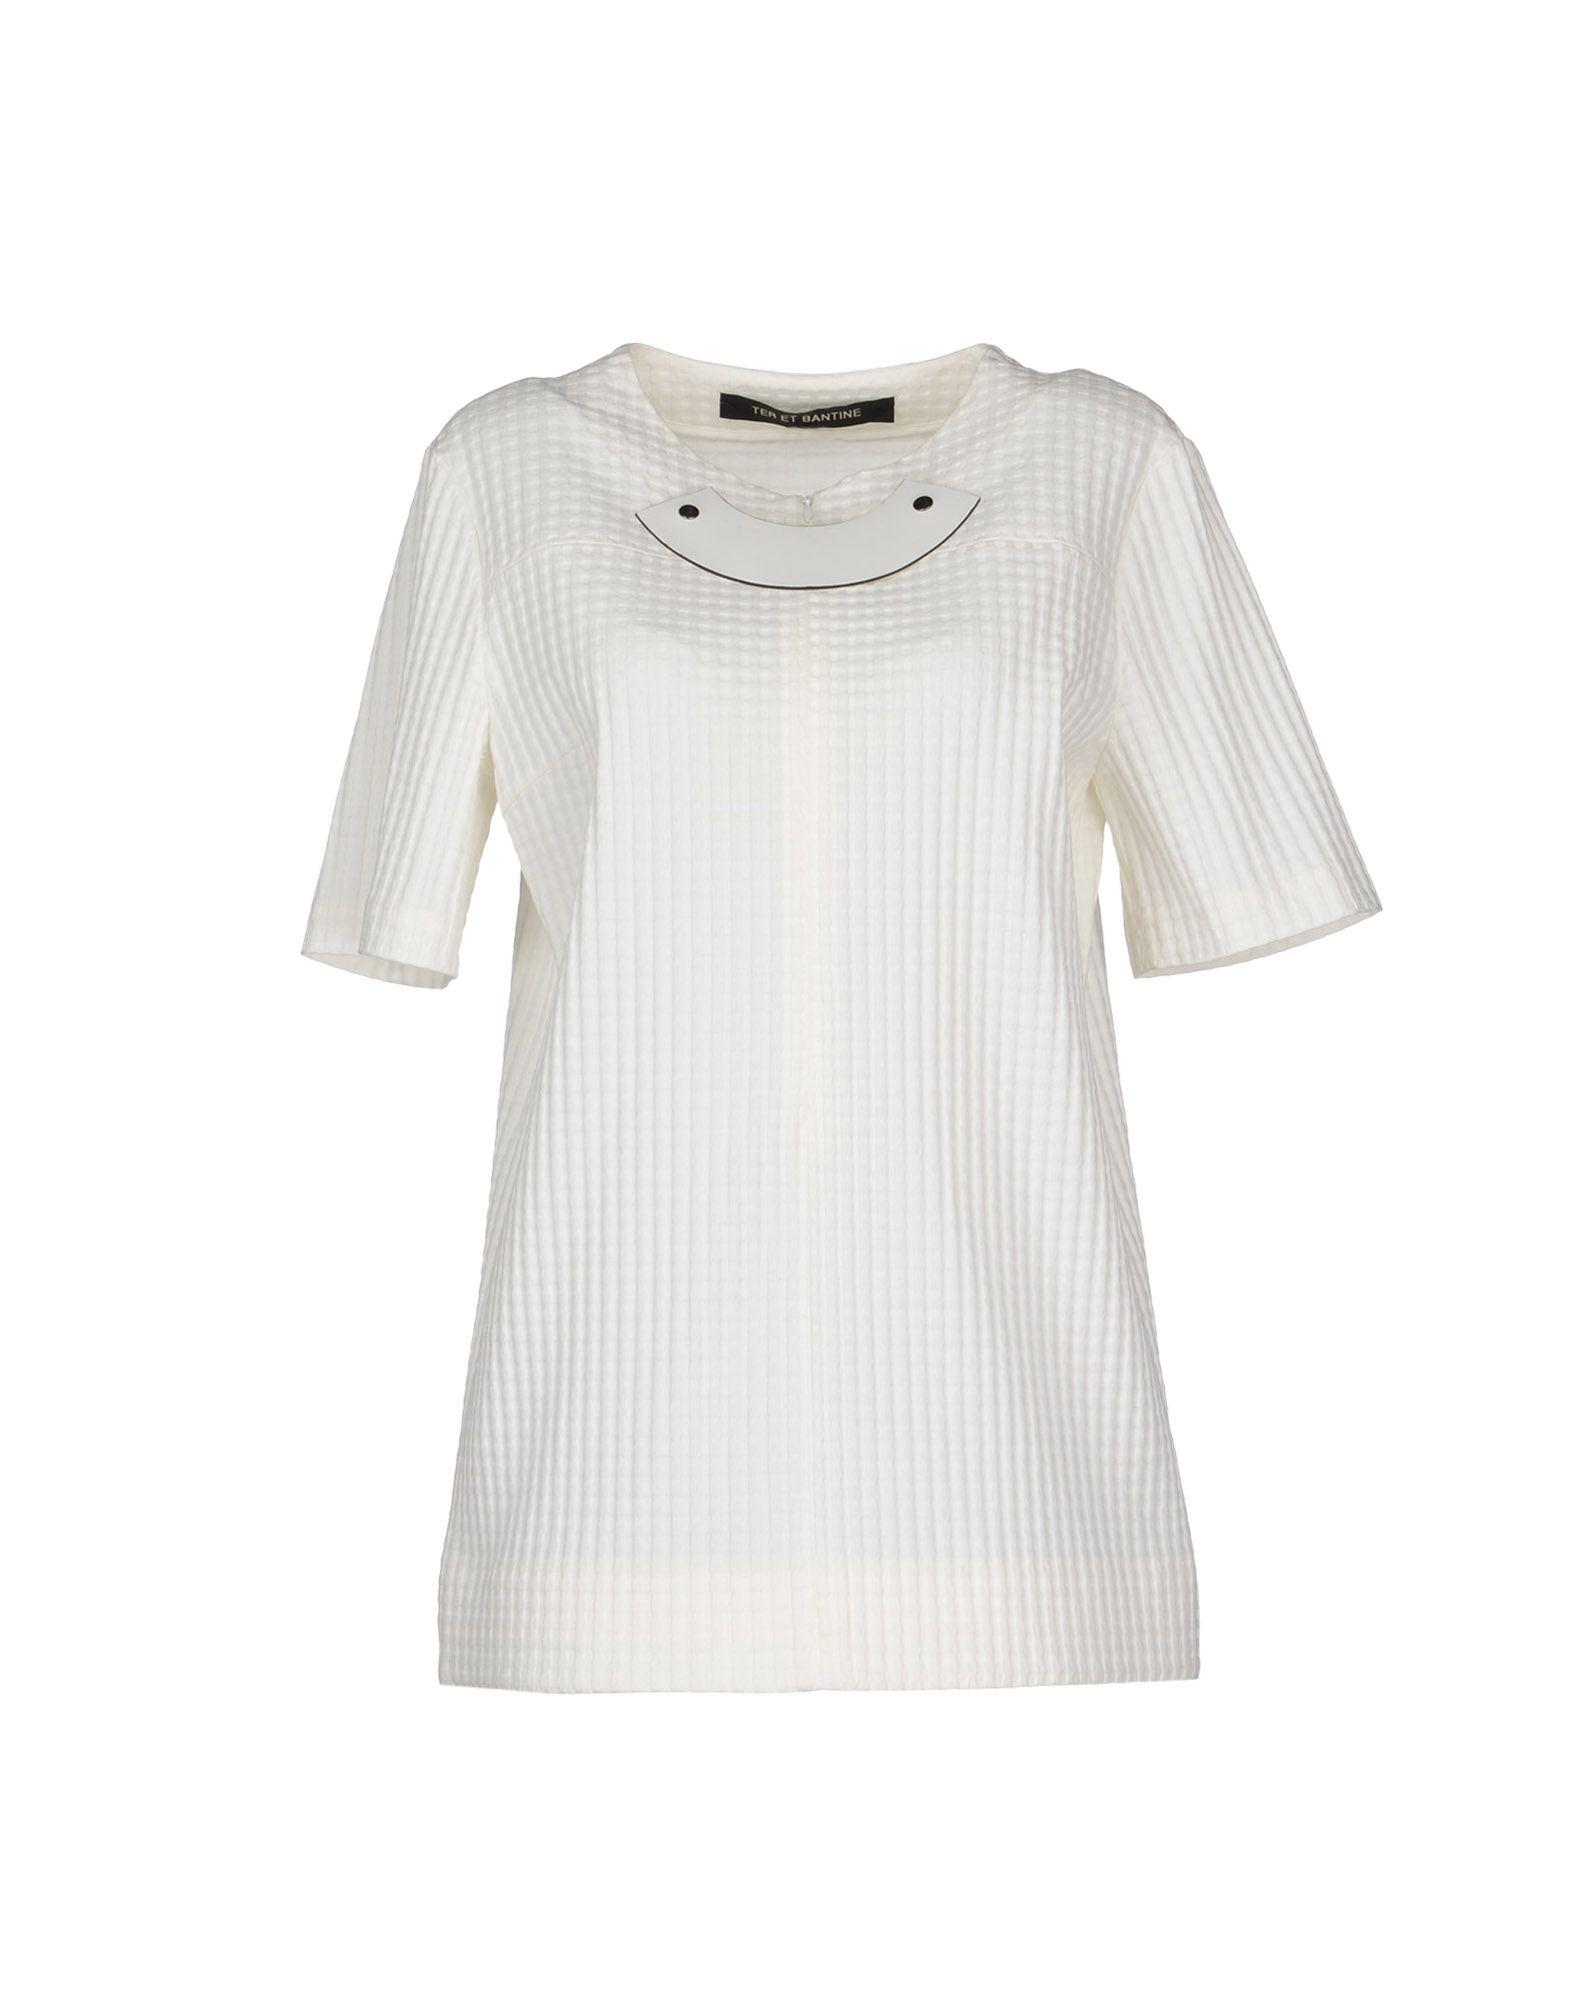 aee3030836ef3 Lyst - Ter Et Bantine Blouse in White